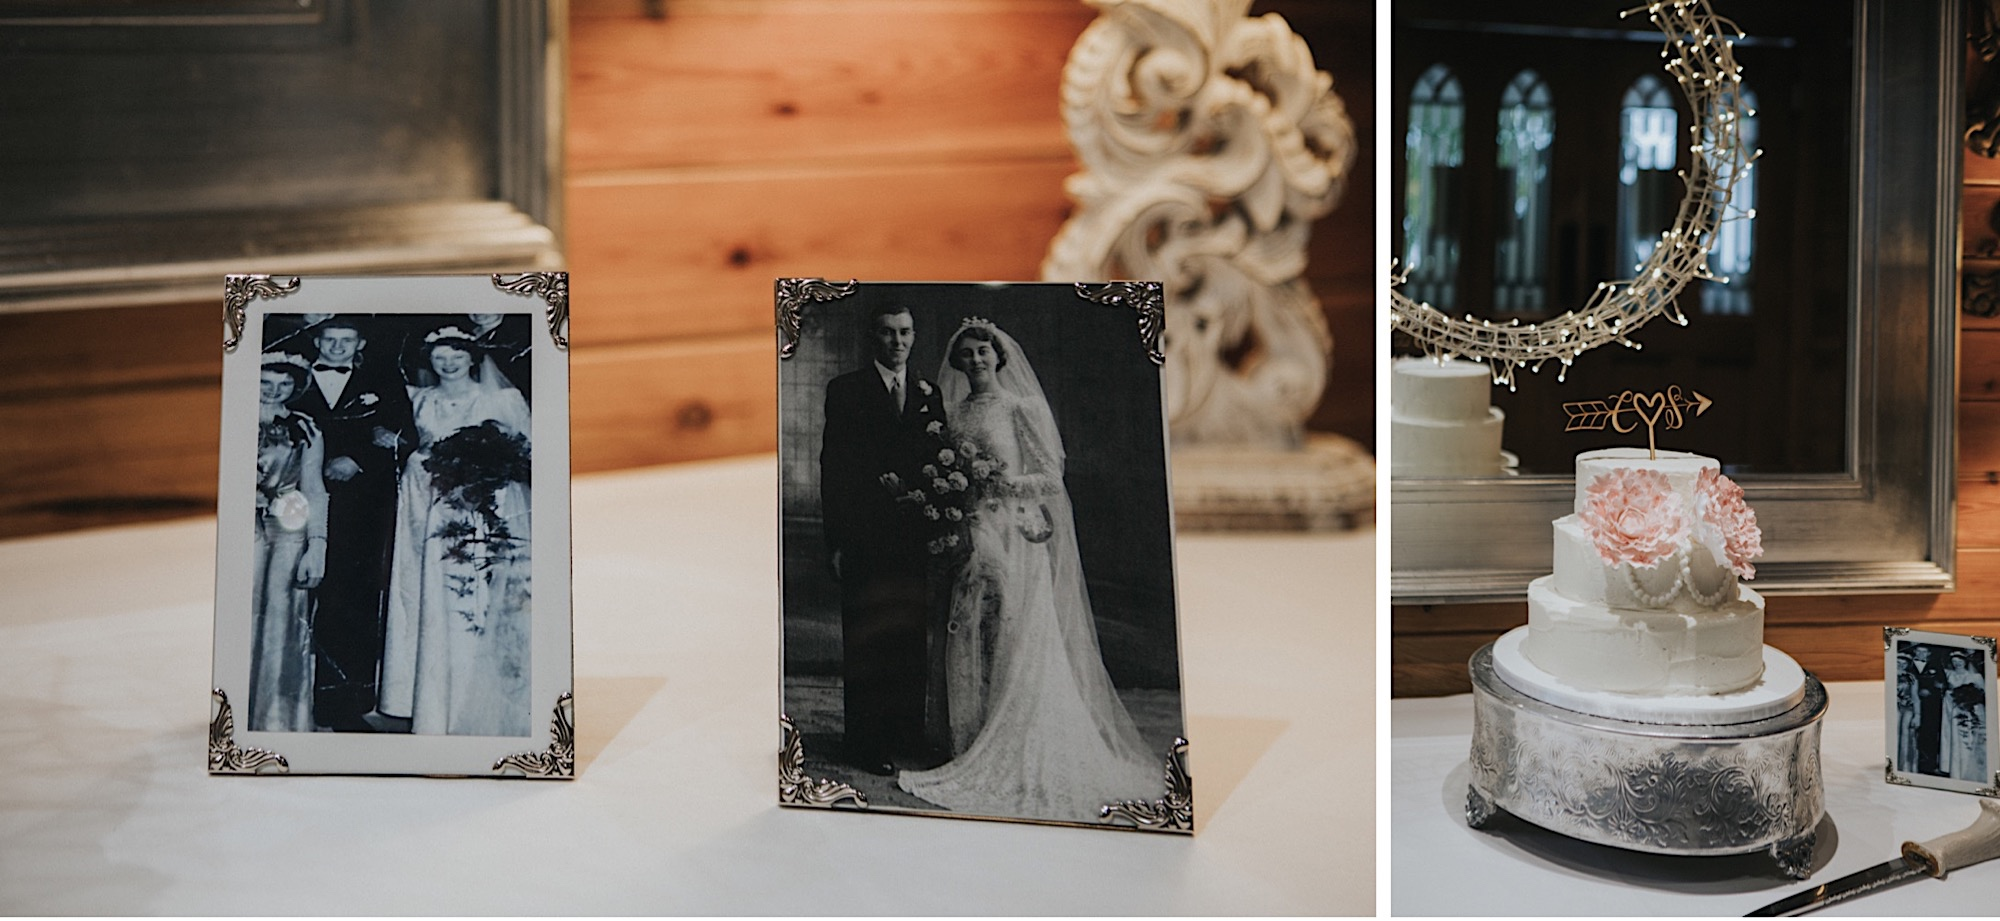 rustic naked wedding cake with photos of parents weddings beside